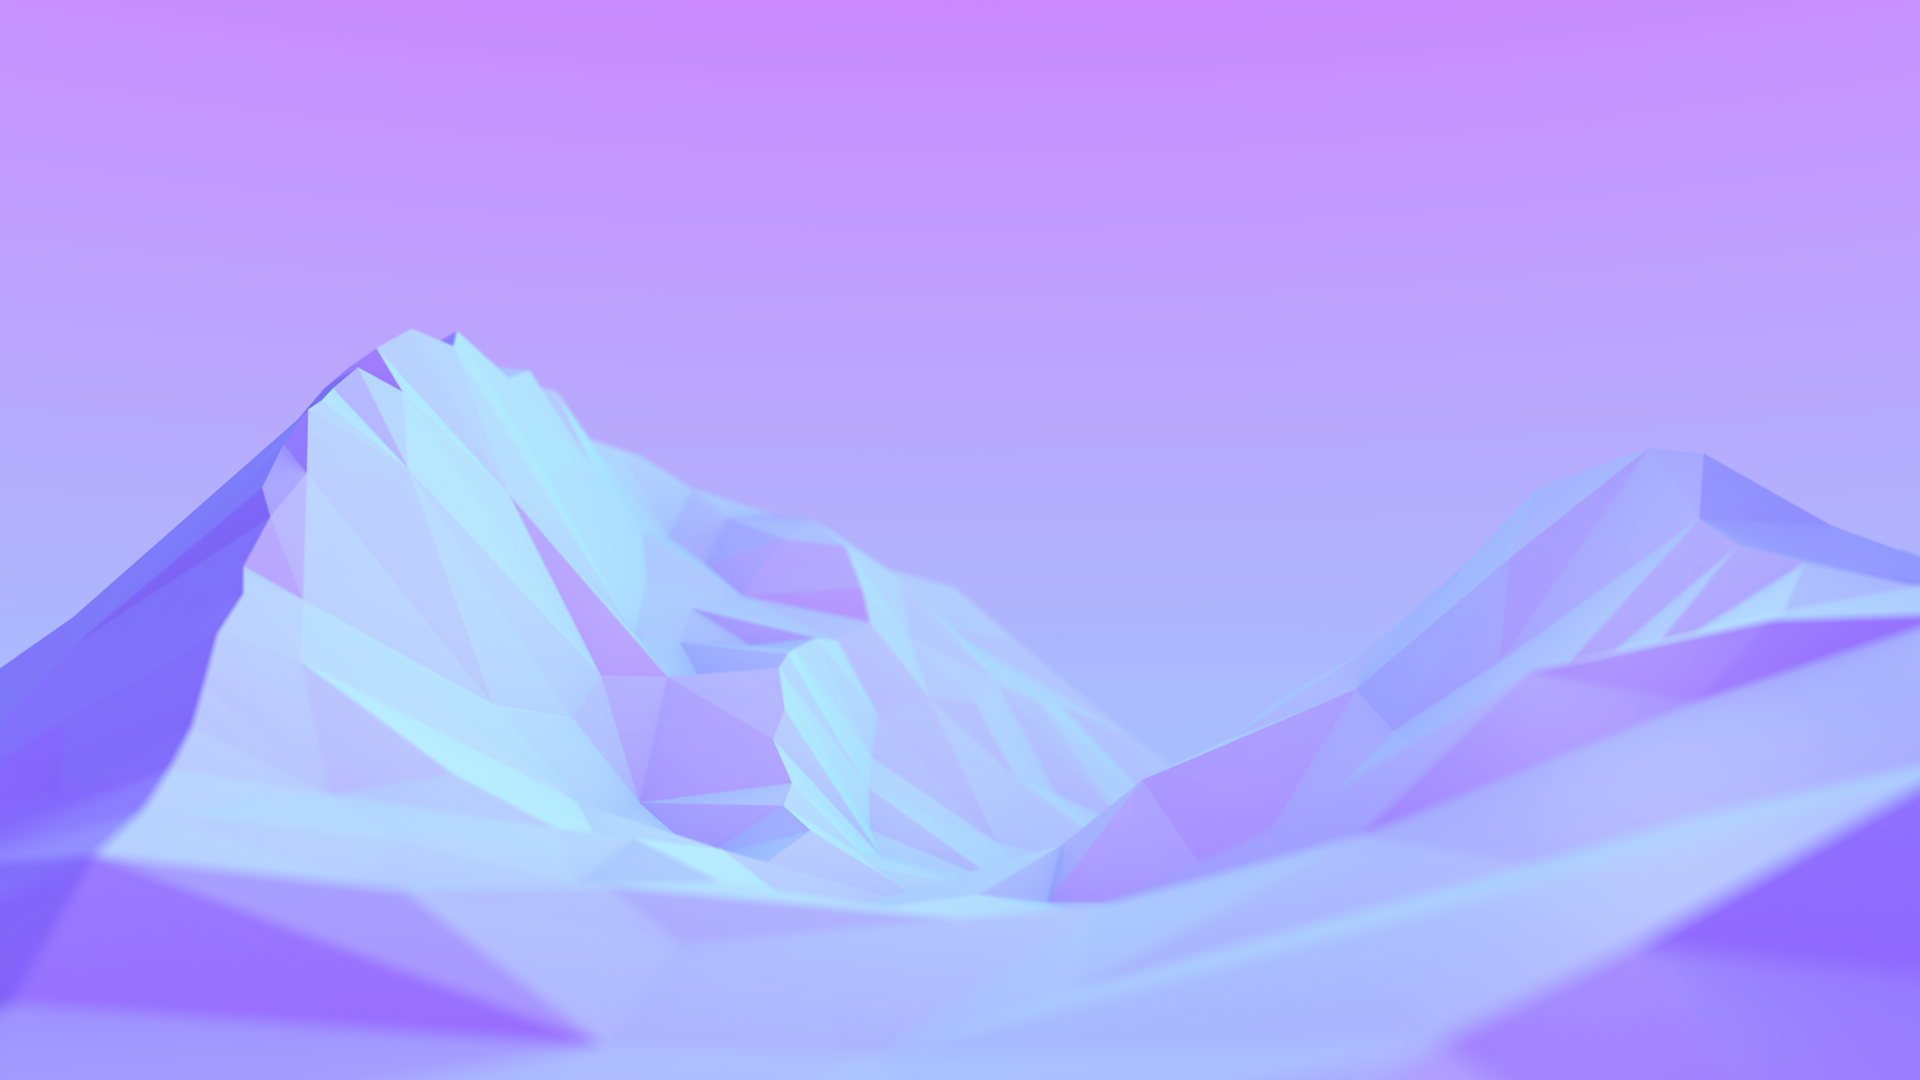 Low Poly Wallpapers 1920x1080